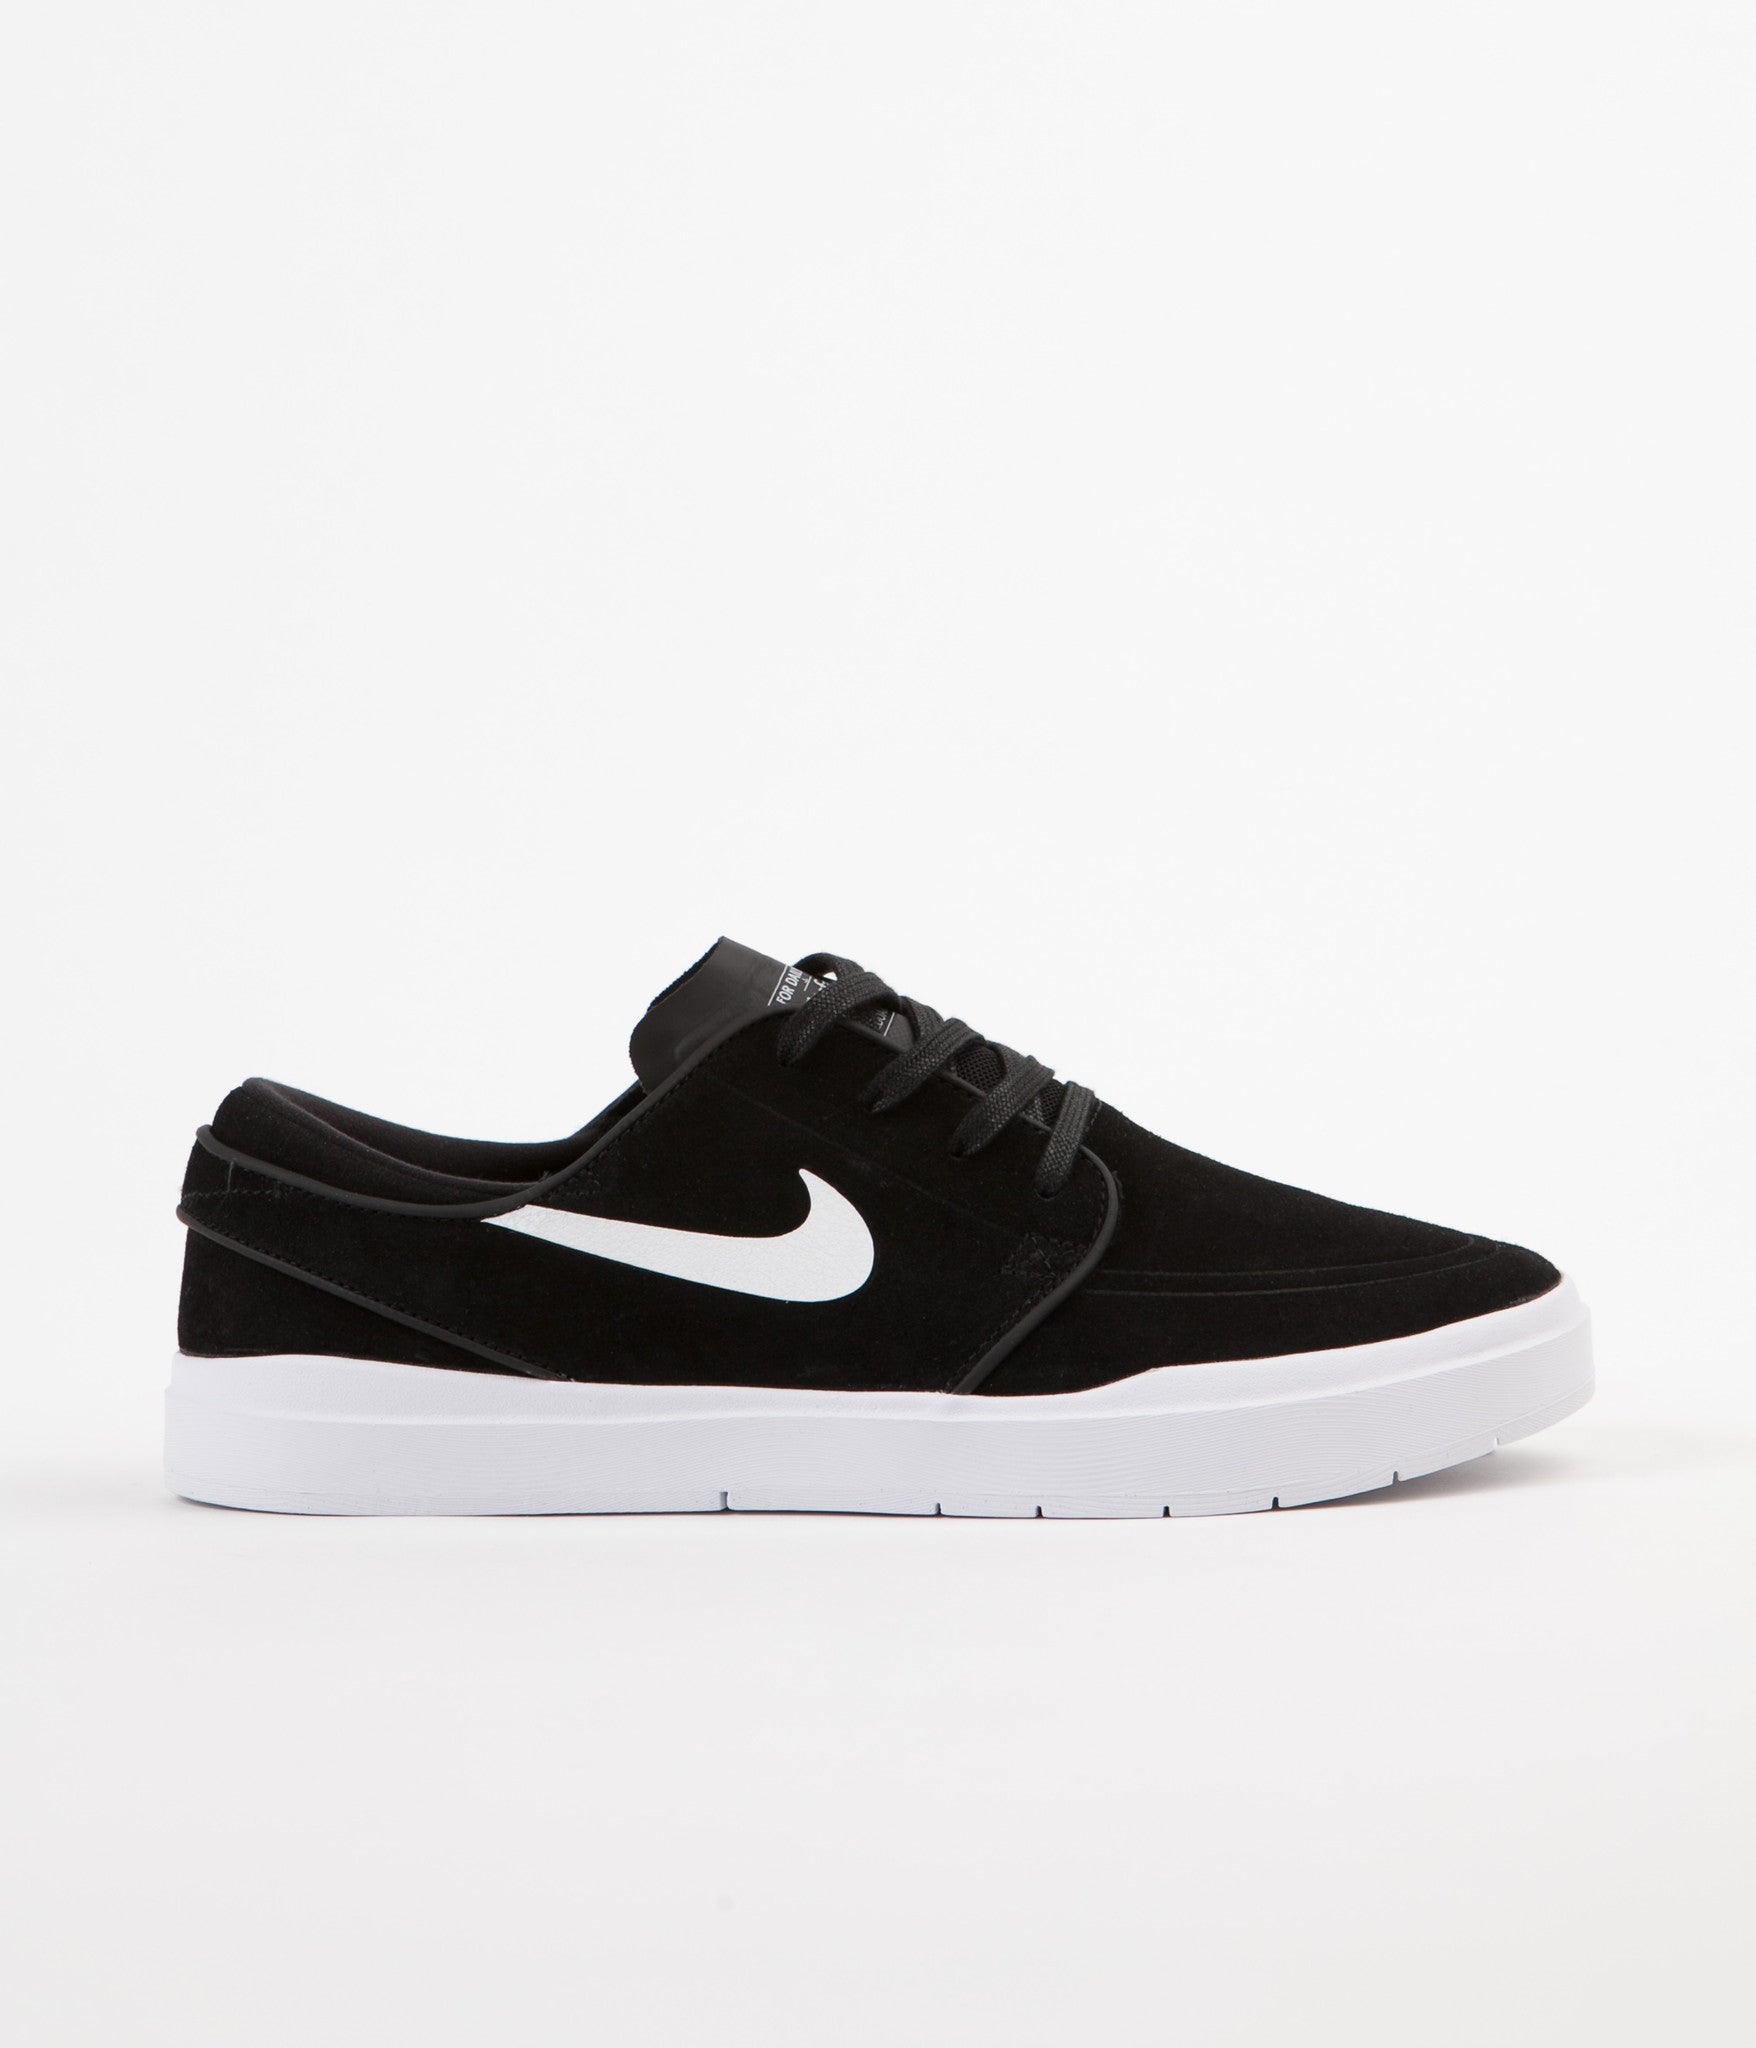 Nike SB Stefan Janoski Hyperfeel Shoes - Black / White | Flatspot